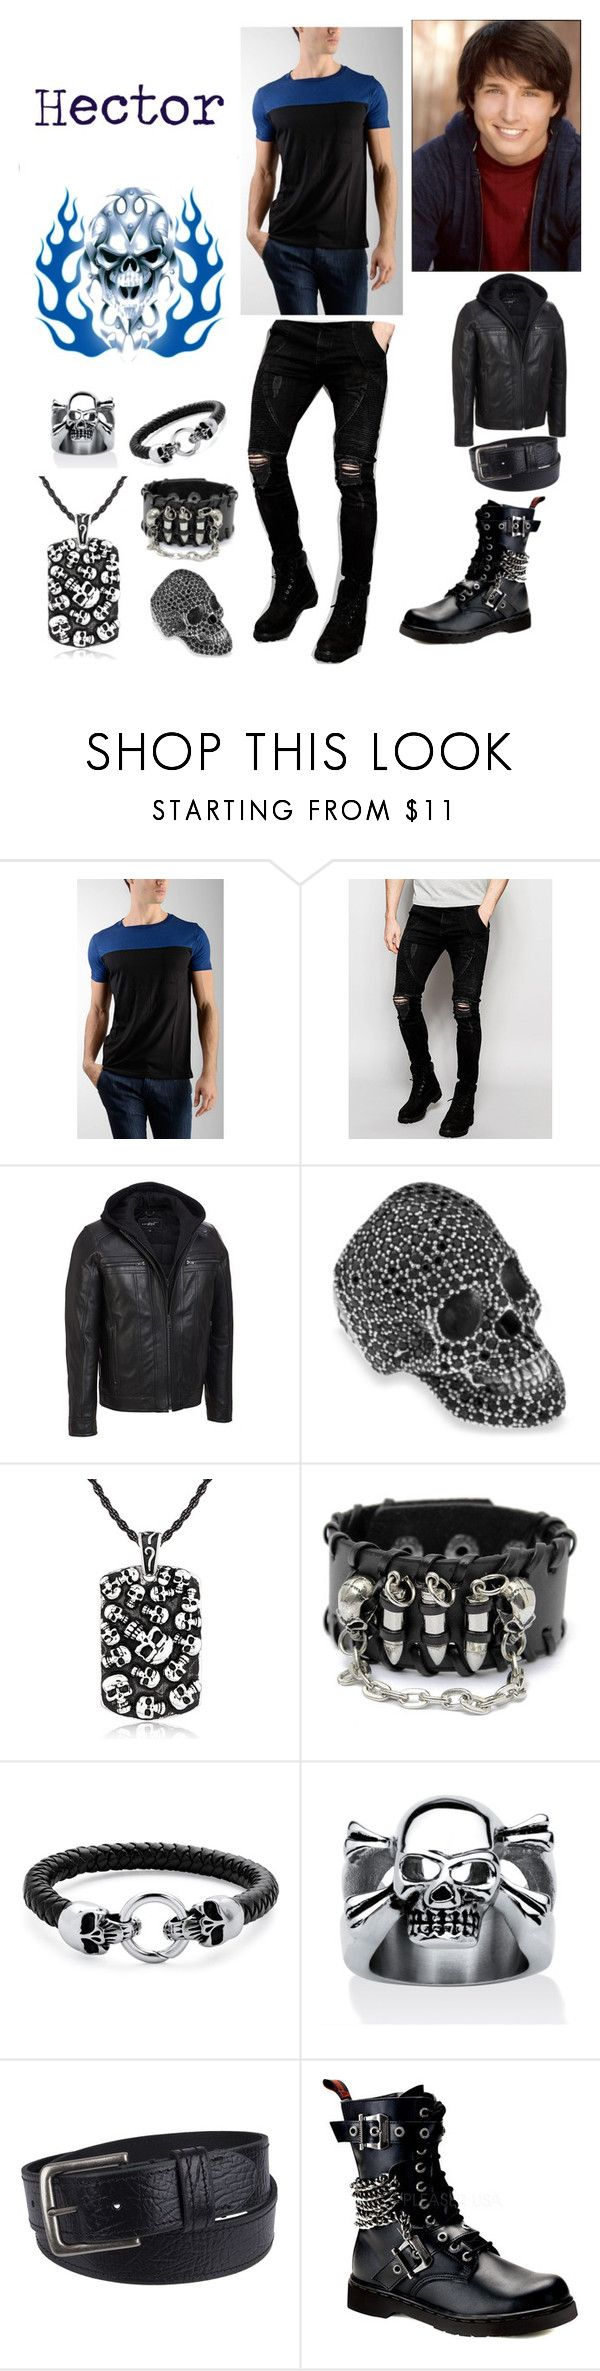 """Hades' Son"" by keih95 ❤ liked on Polyvore featuring Rebello, Sik Silk, Platadepalo, West Coast Jewelry, Palm Beach Jewelry, Levi's, Demonia, men's fashion and menswear"